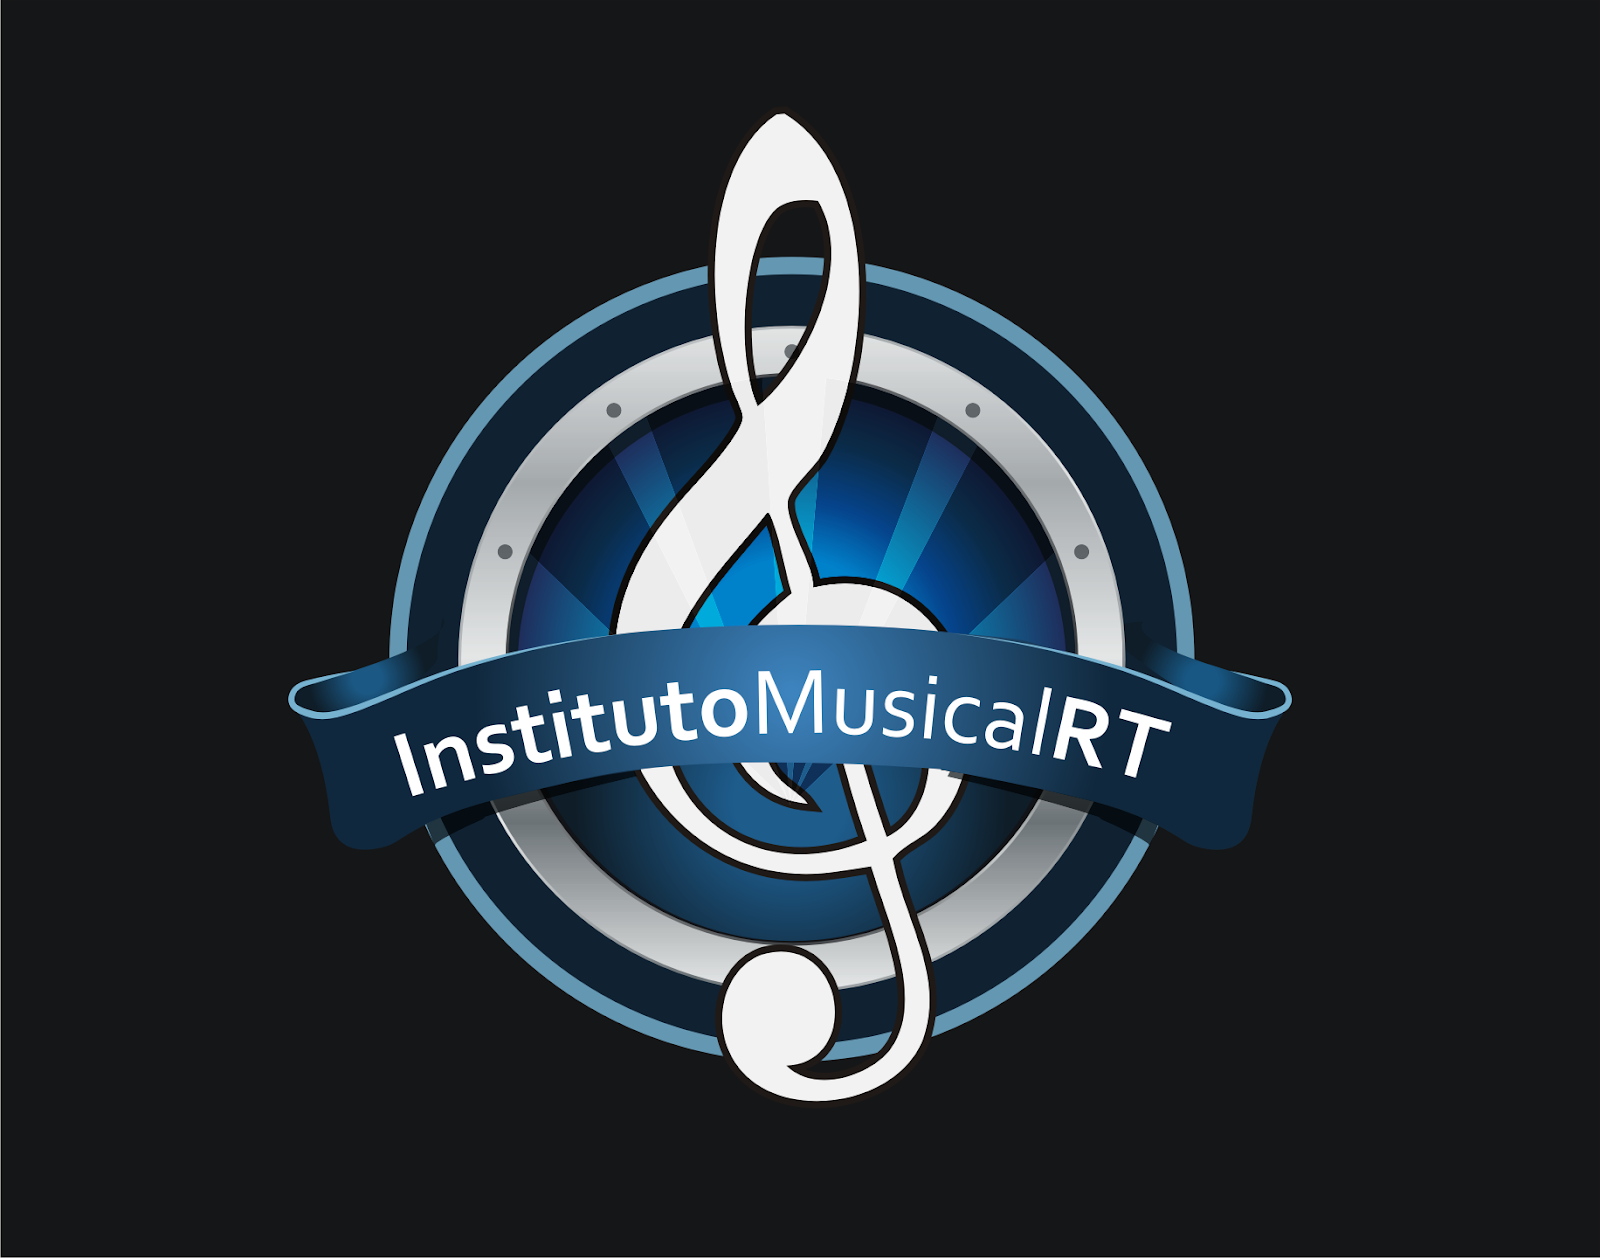 Instituto Musical RT